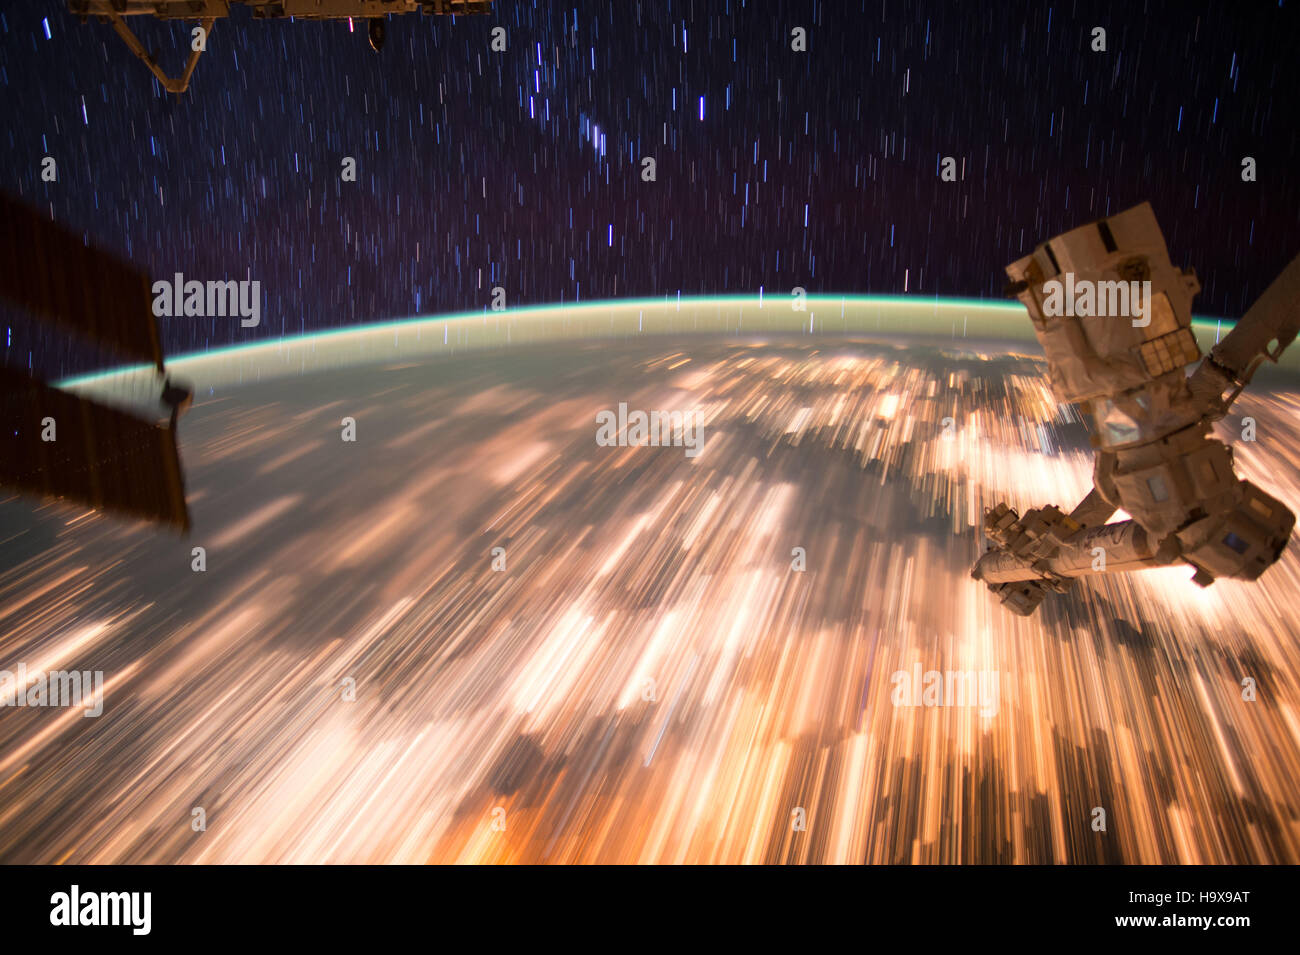 Astronauts aboard the NASA International Space Station captured a series of star trail images over the Earth surface - Stock Image